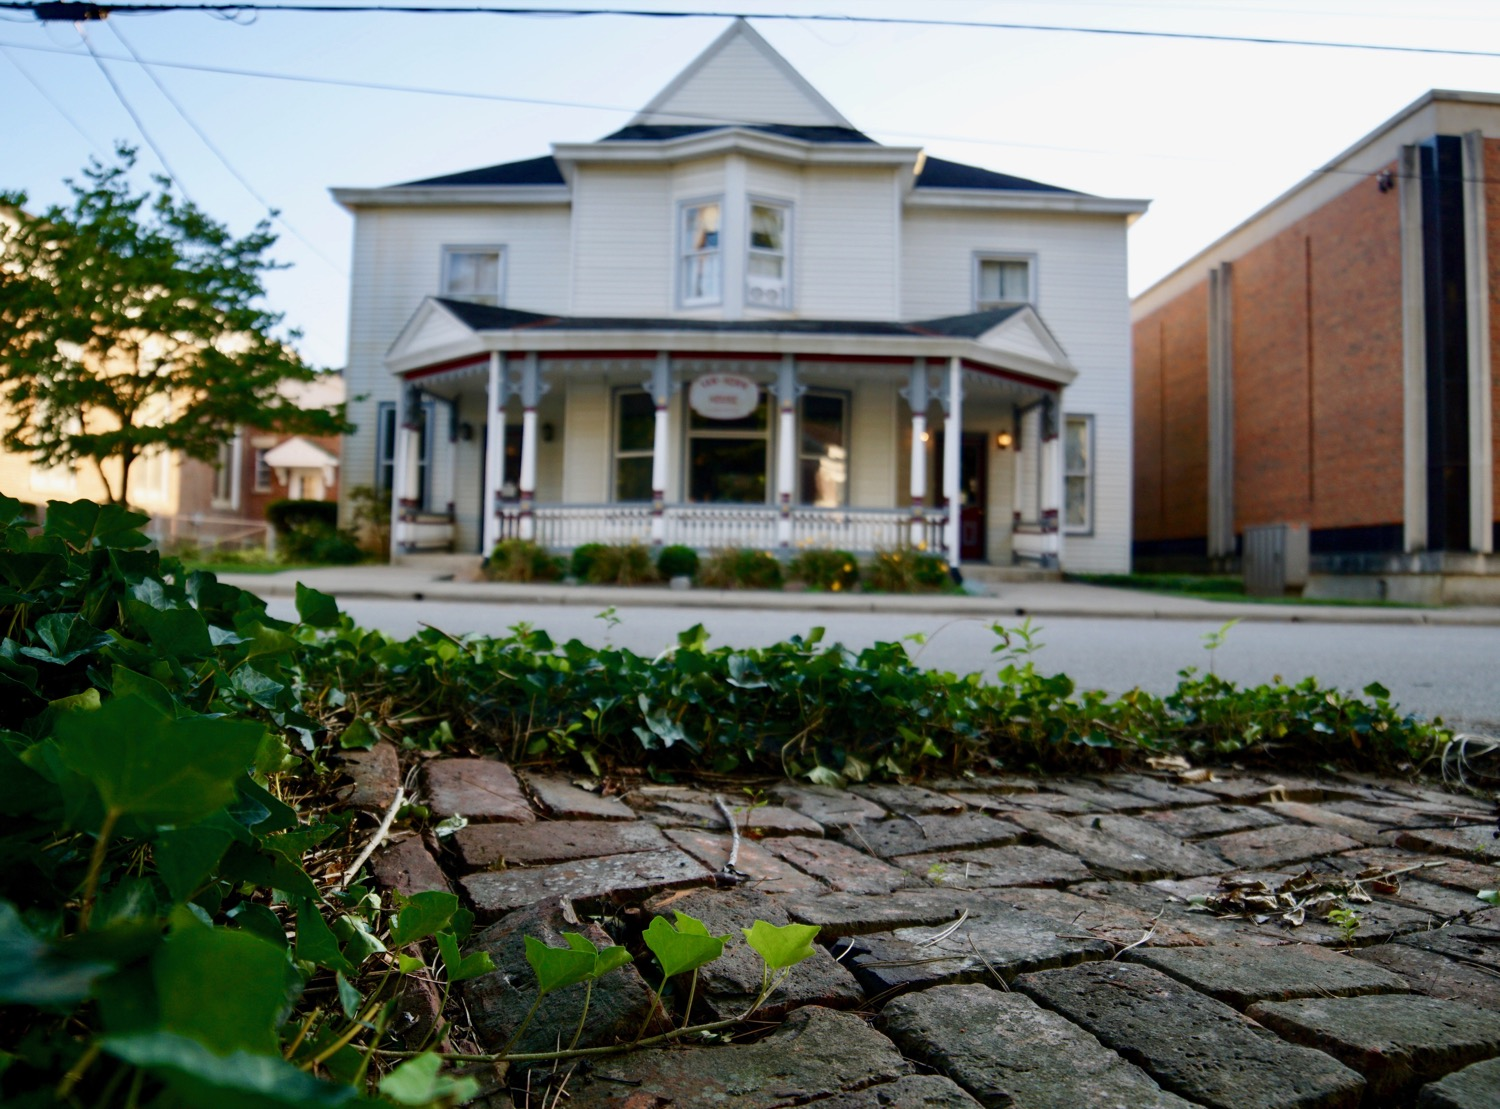 Established in 1848, Batavia is the county seat of Clermont County. It sits outside the I-275 belt loop (24 miles east of Cincinnati), near Amish country and the foothills of Appalachia. Its architecture showcases an alluring 19th- and early-20th century charm. / Image: Brian Planalp // Published: 8.21.17